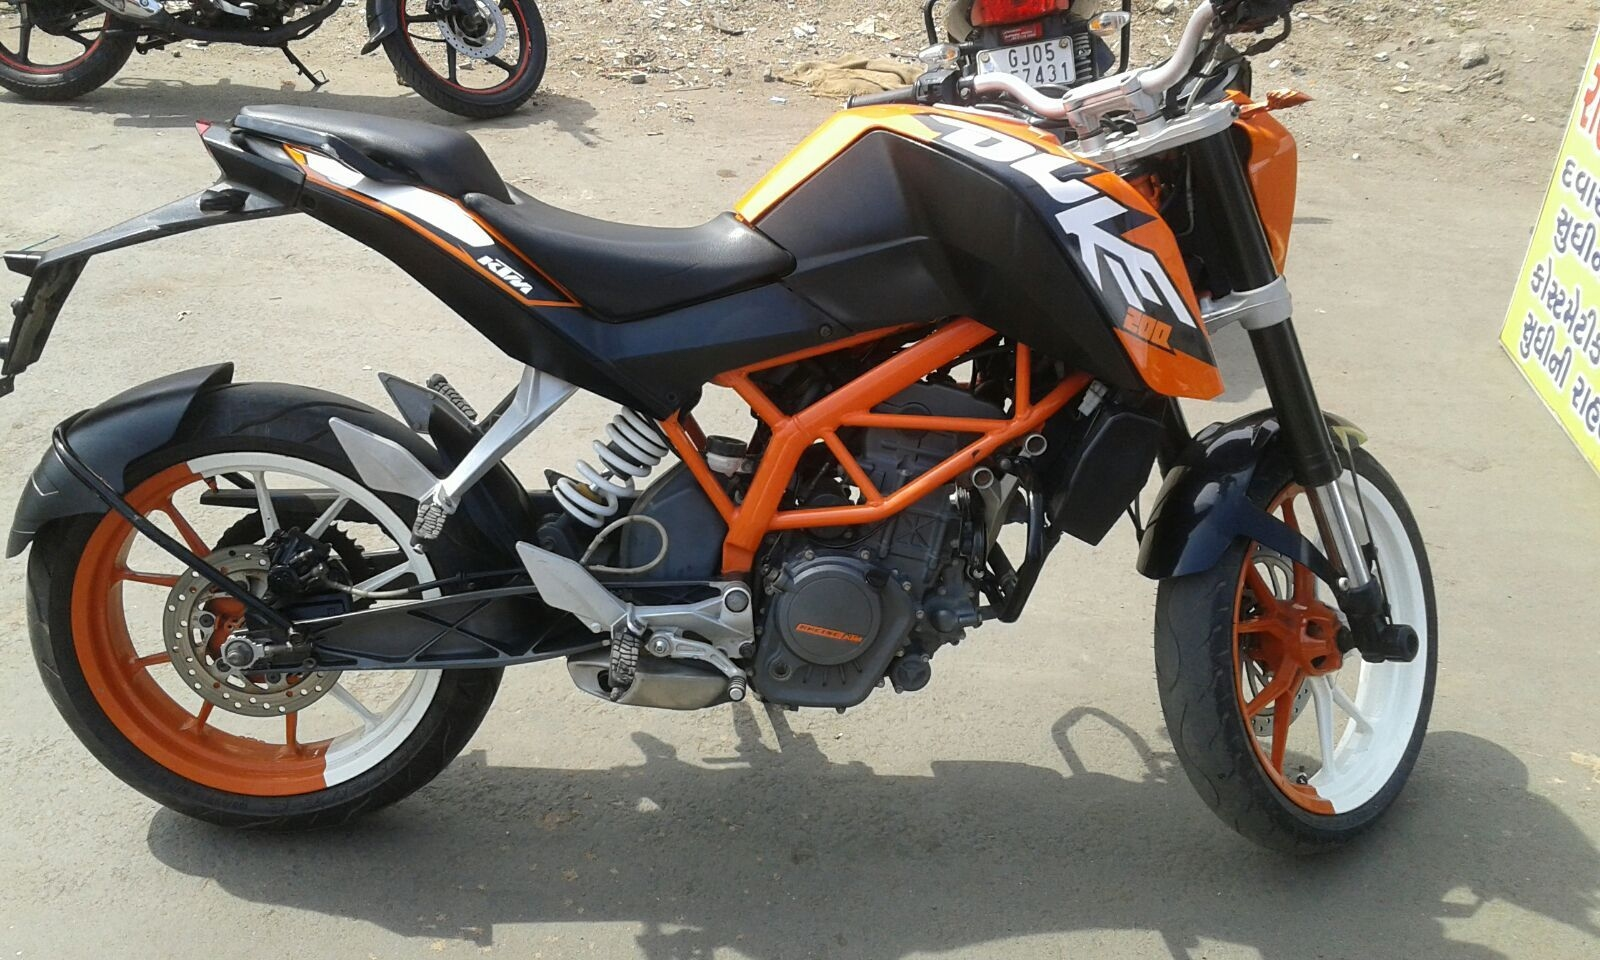 used 2012 ktm duke bike for sale in surat- (id:1415238504) - droom